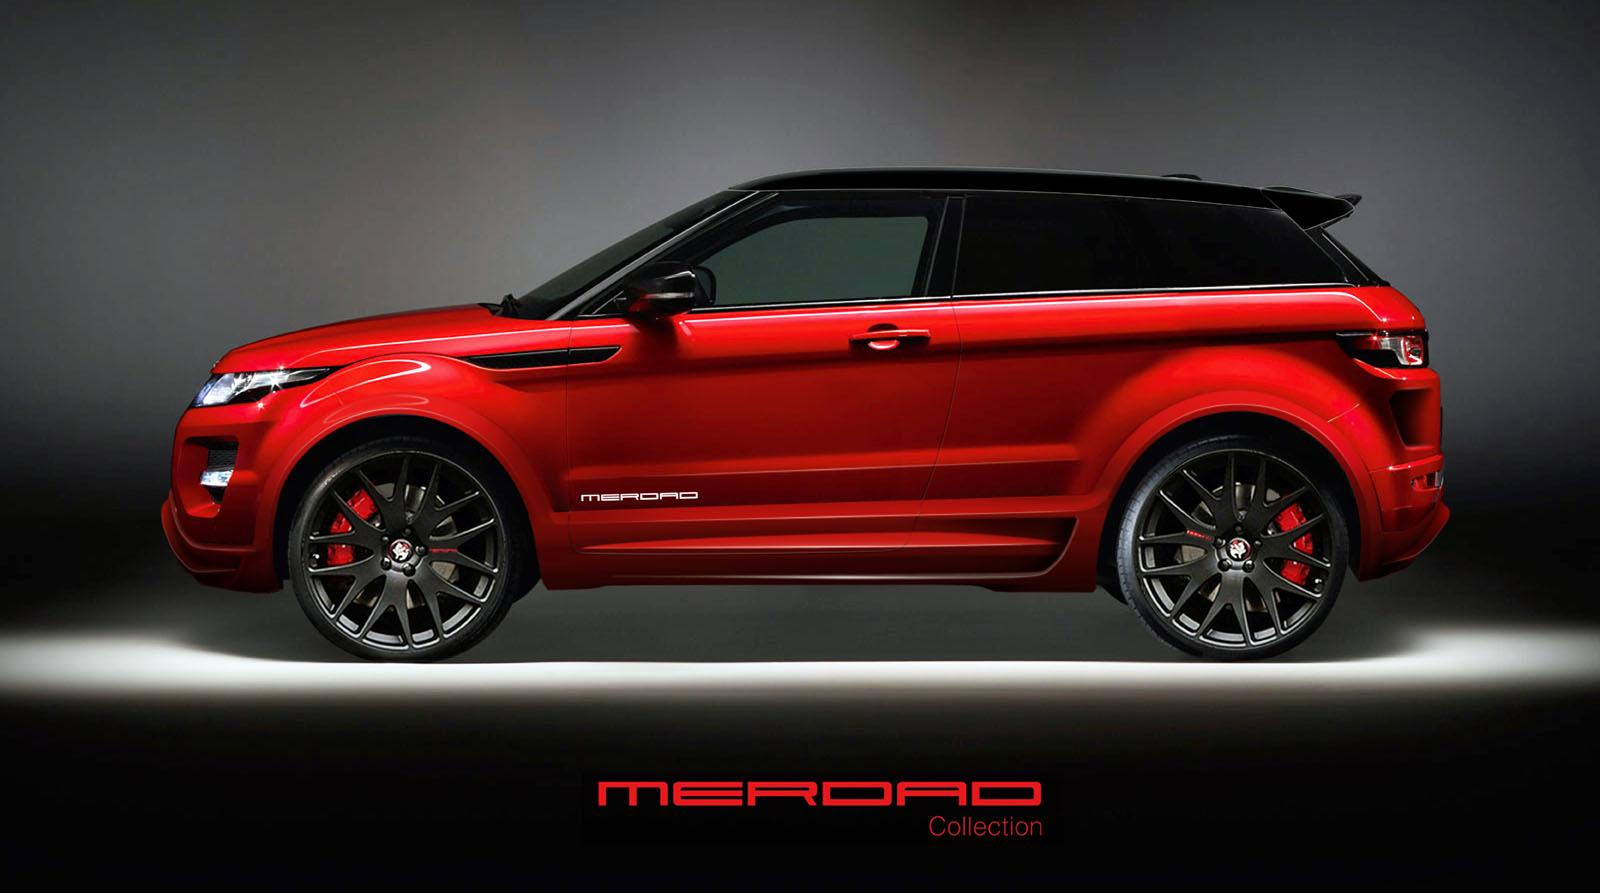 2011 merdad collection range rover evoque sport cars and motorcycle news. Black Bedroom Furniture Sets. Home Design Ideas